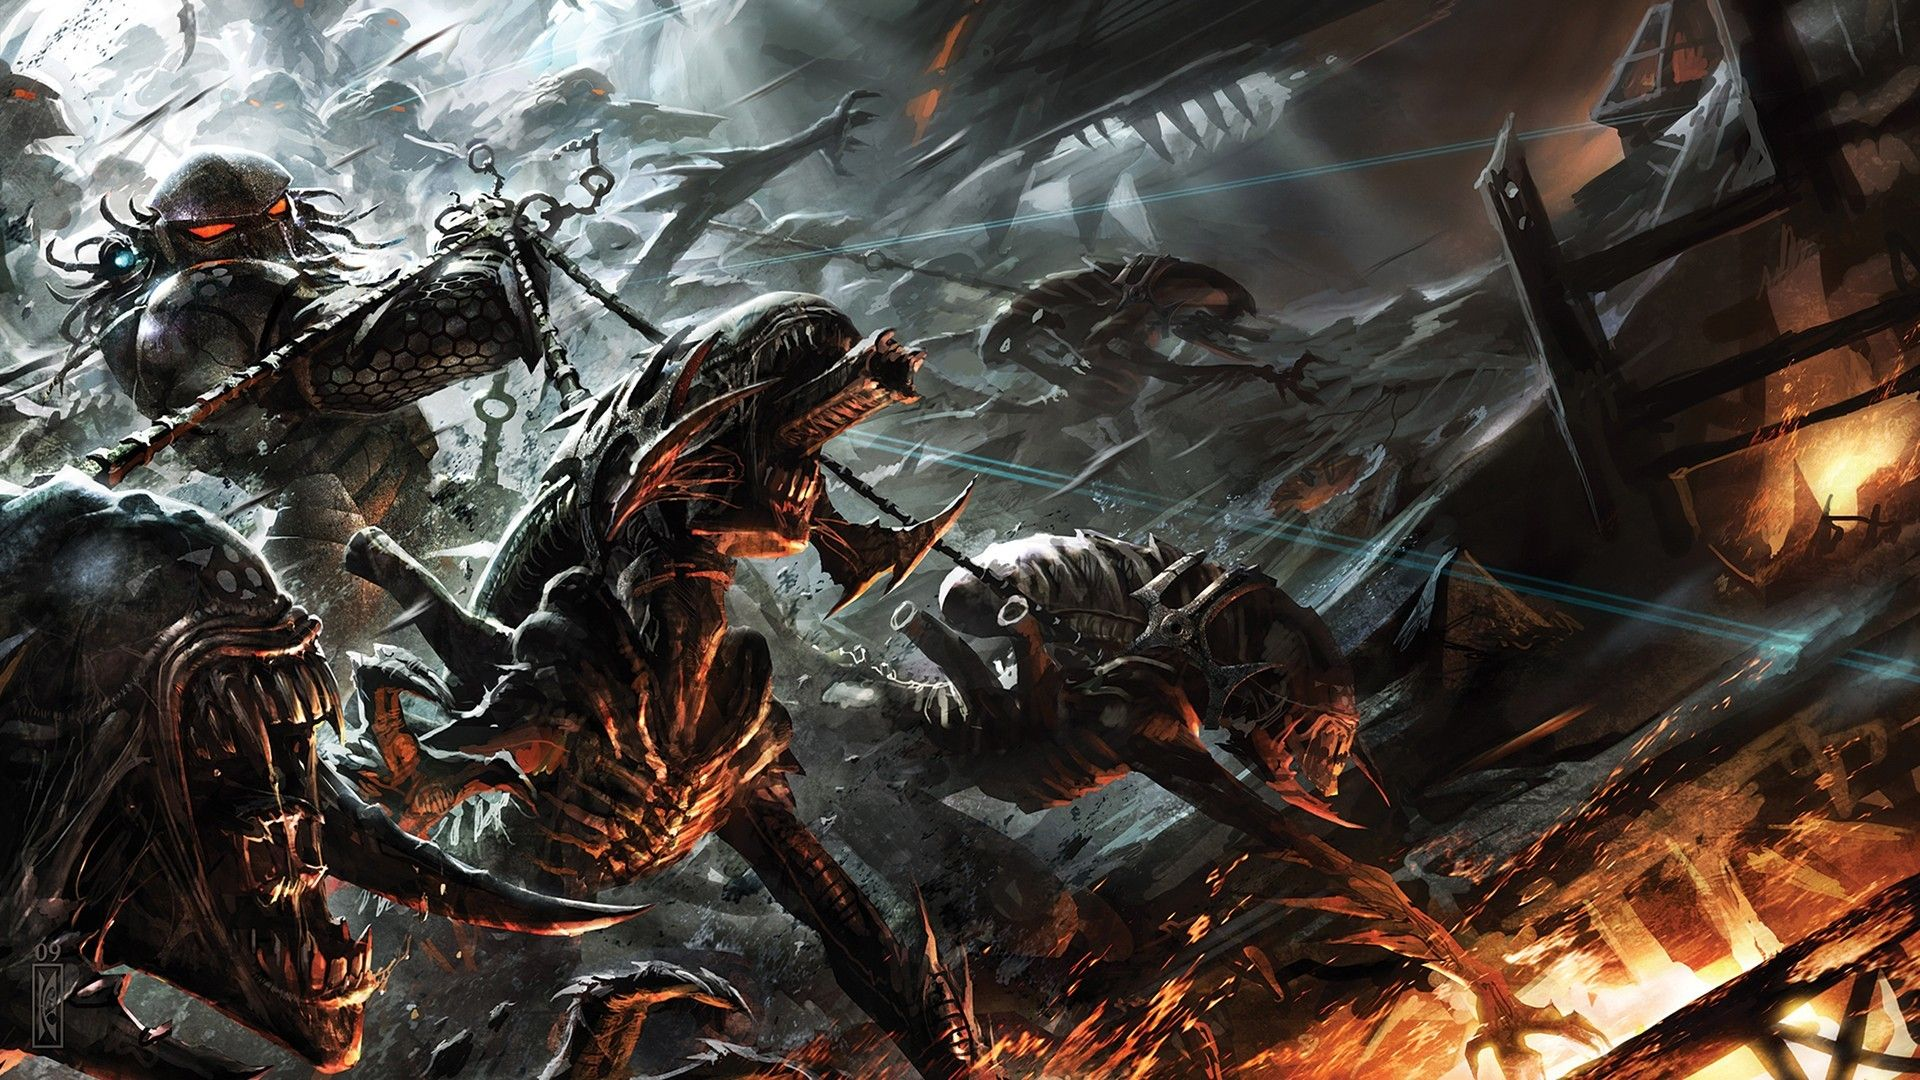 Science Fiction Xenomorph Predator Alien Vs Predator